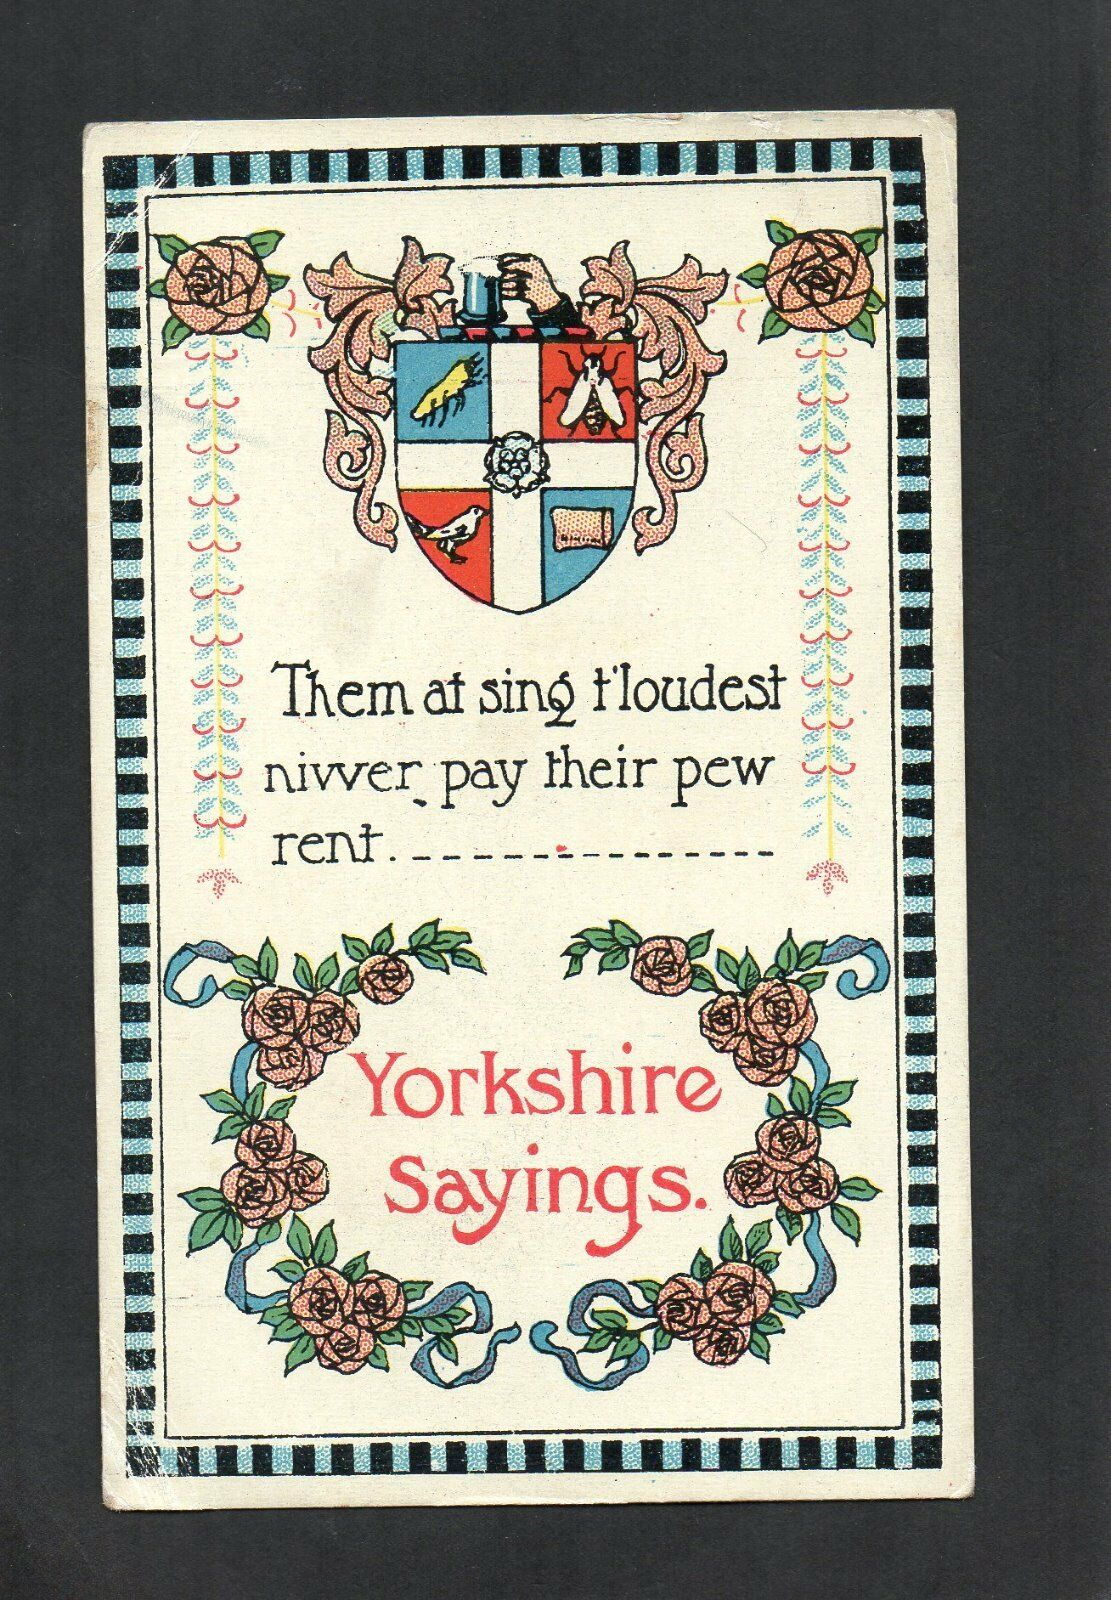 yorkshire sayings postcard them at sing t loudest 1 00